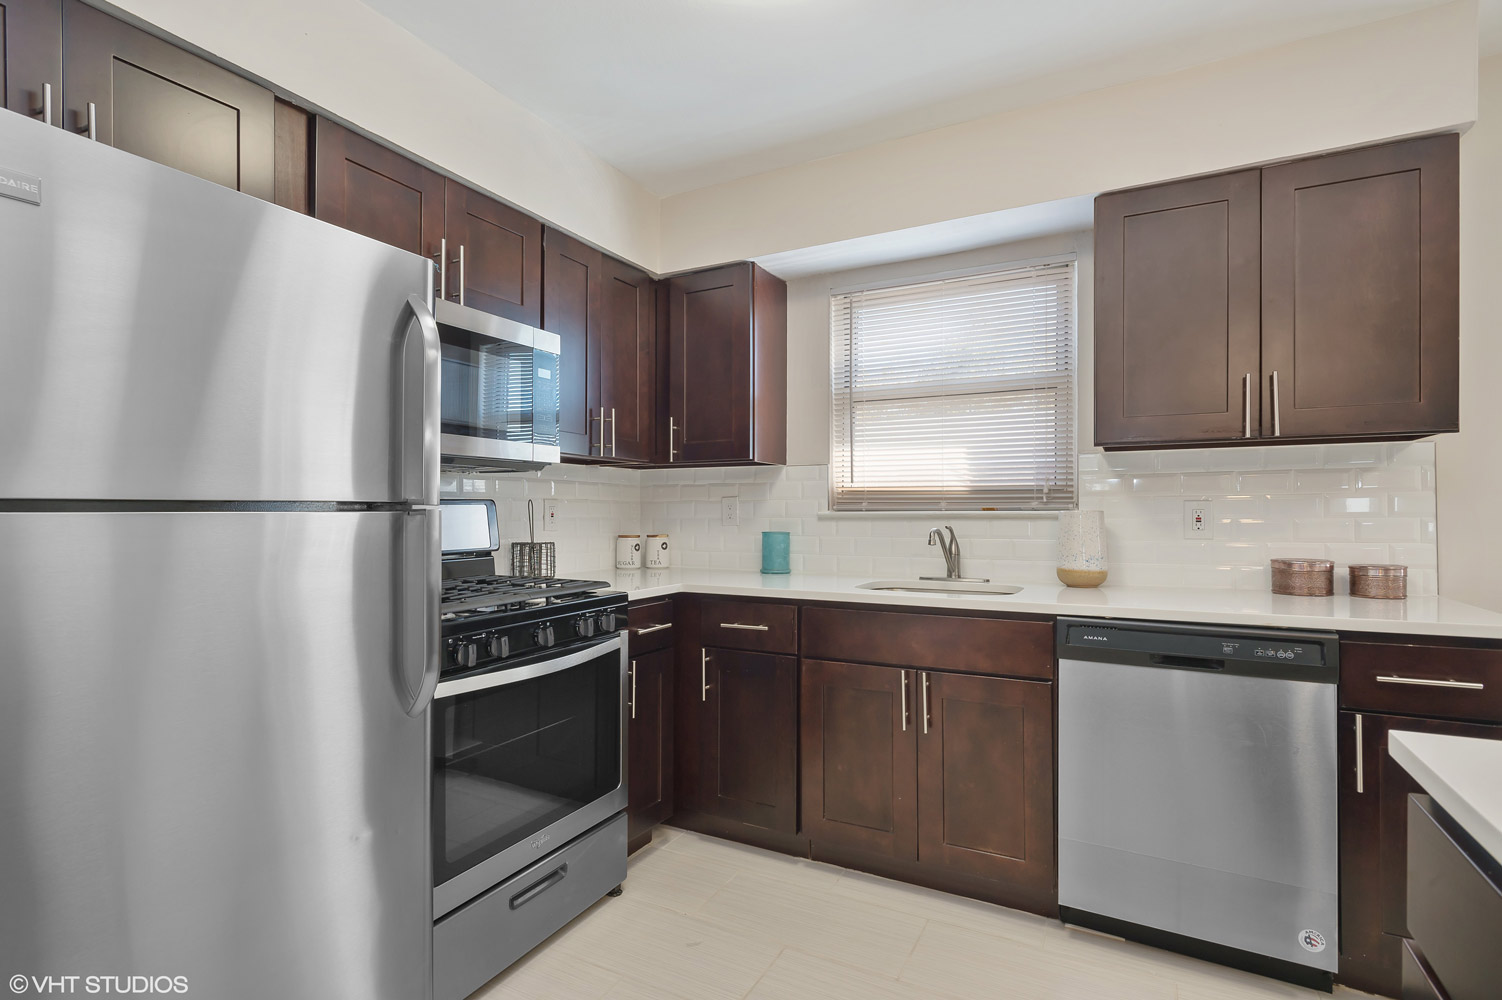 Kitchen Pantry at Grandview Gardens Apartments in Edison, New Jersey